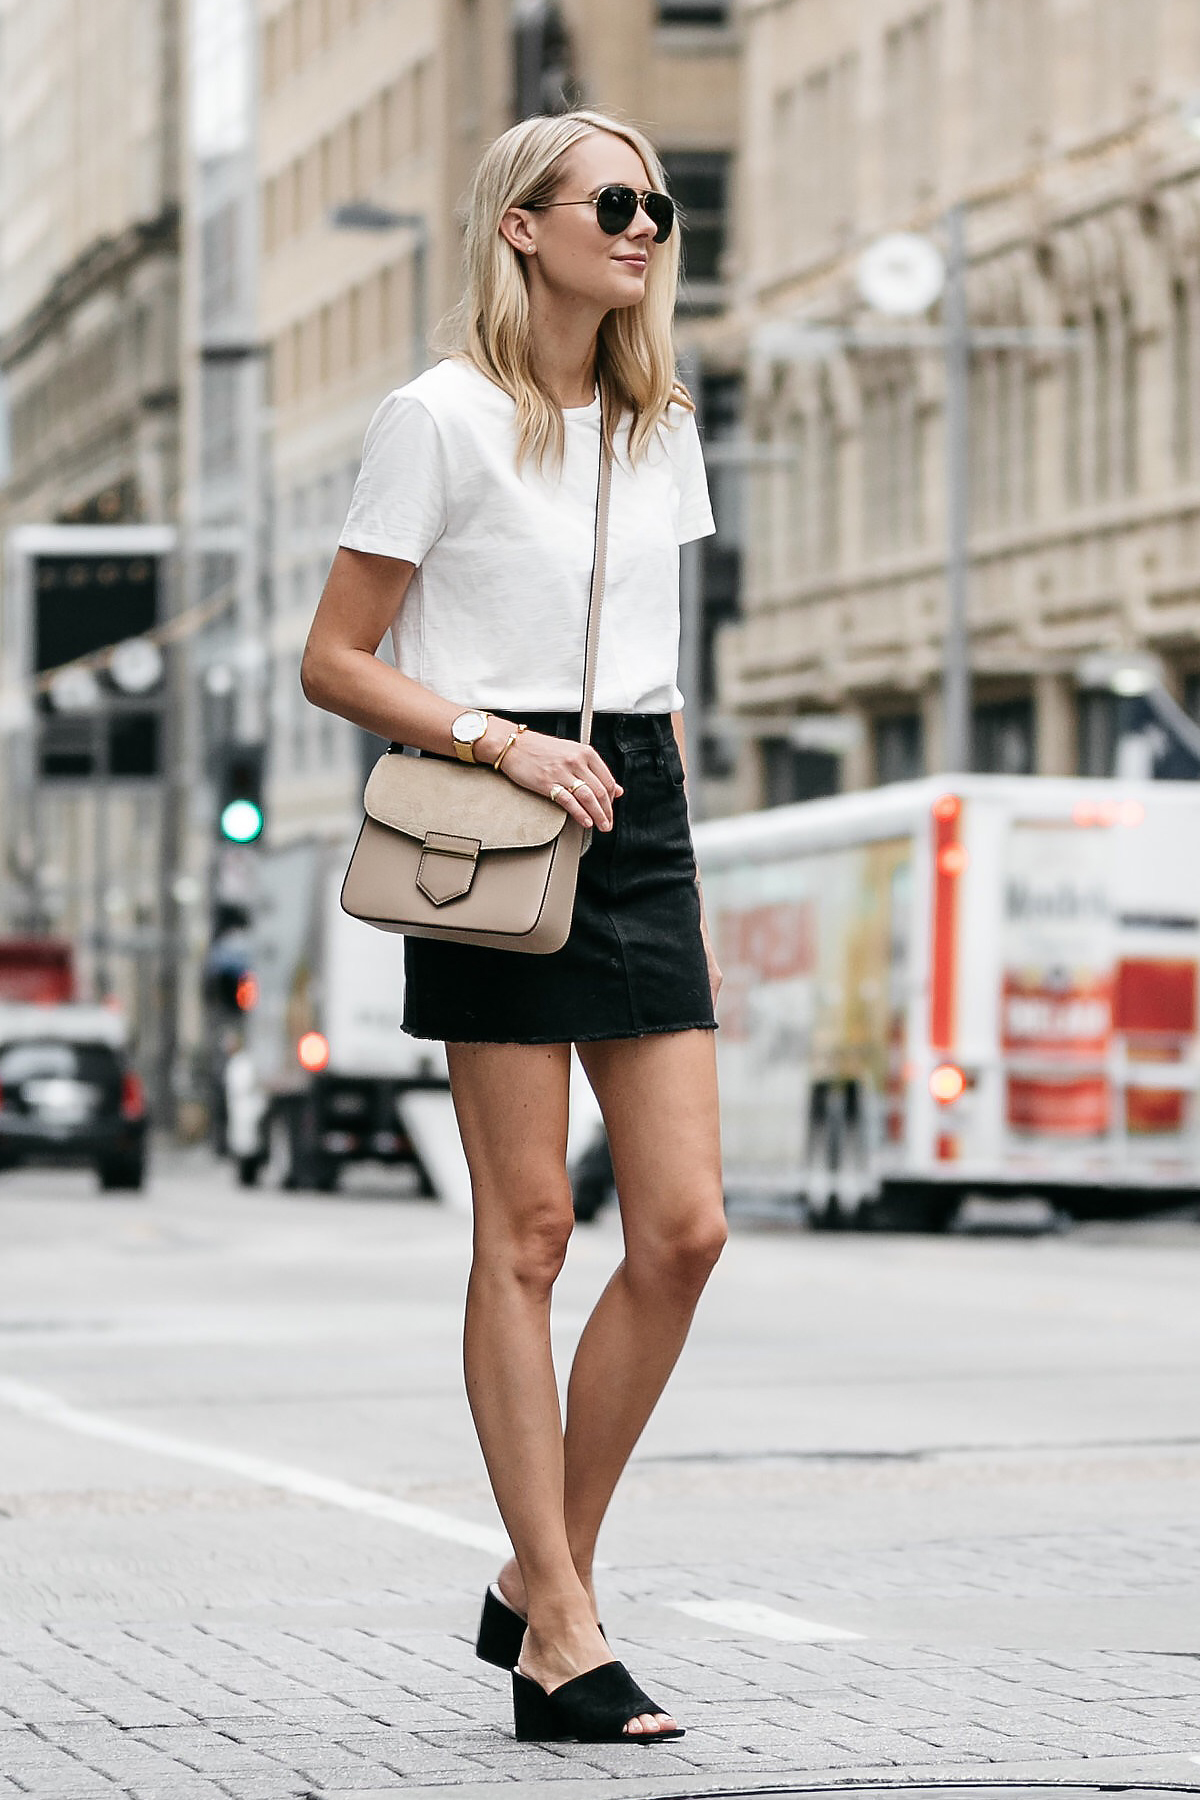 Blonde woman wearing white tshirt frame black denim skirt outfit black mules tan crossbody handbag street style dallas blogger fashion blogger